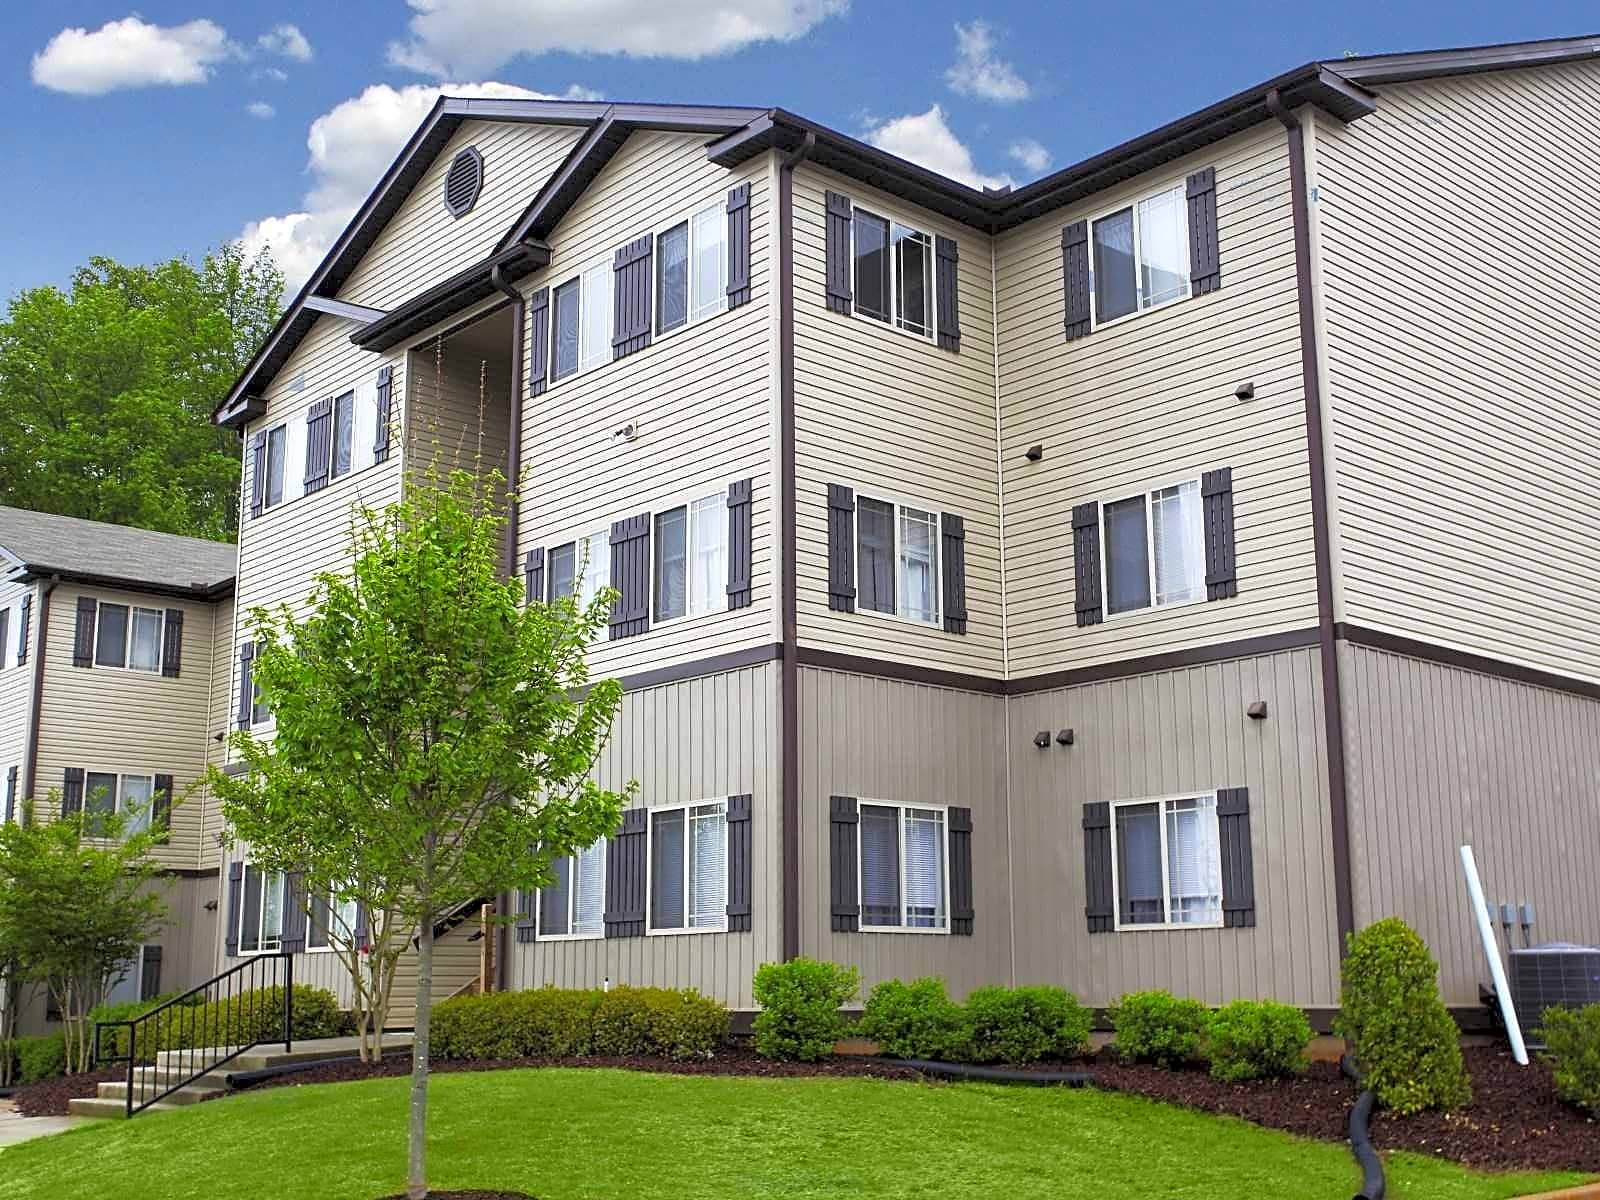 Apartments And Houses For Rent In Boiling Springs